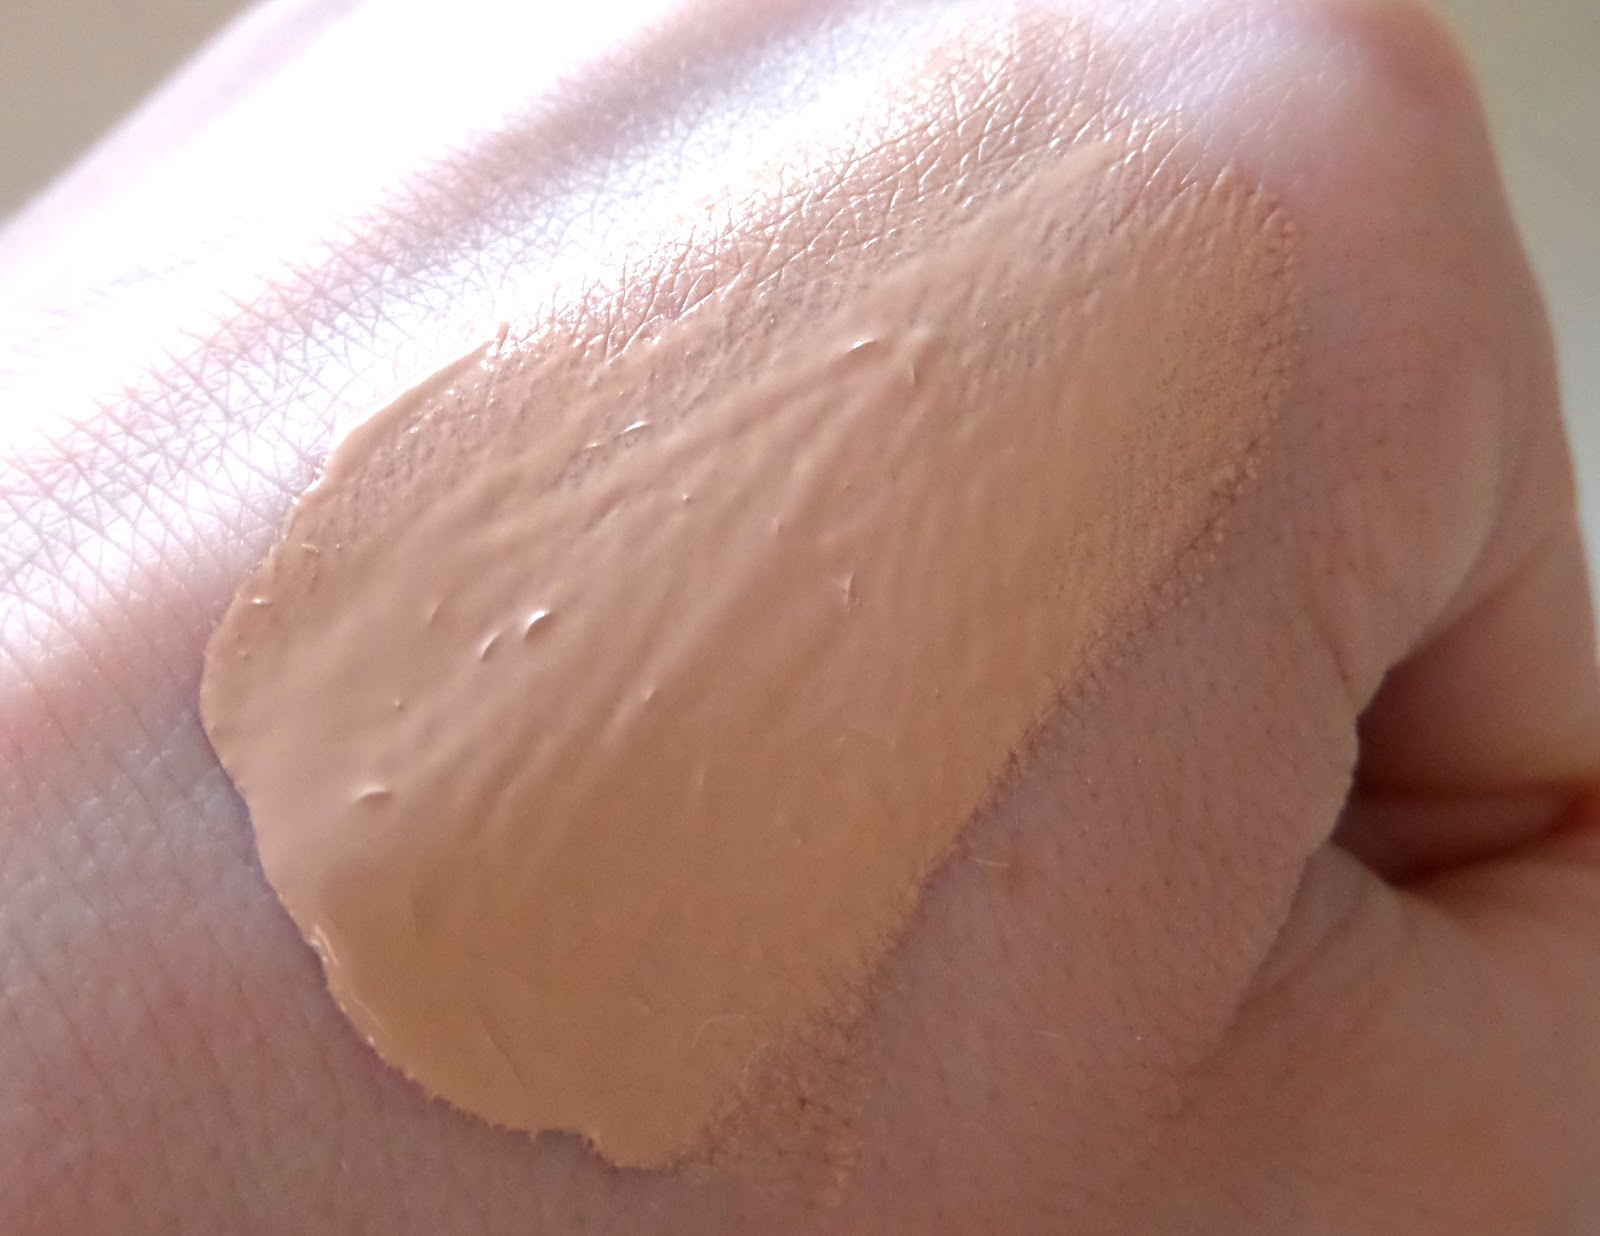 Bourjois Healthy Mix Foundation Swatch